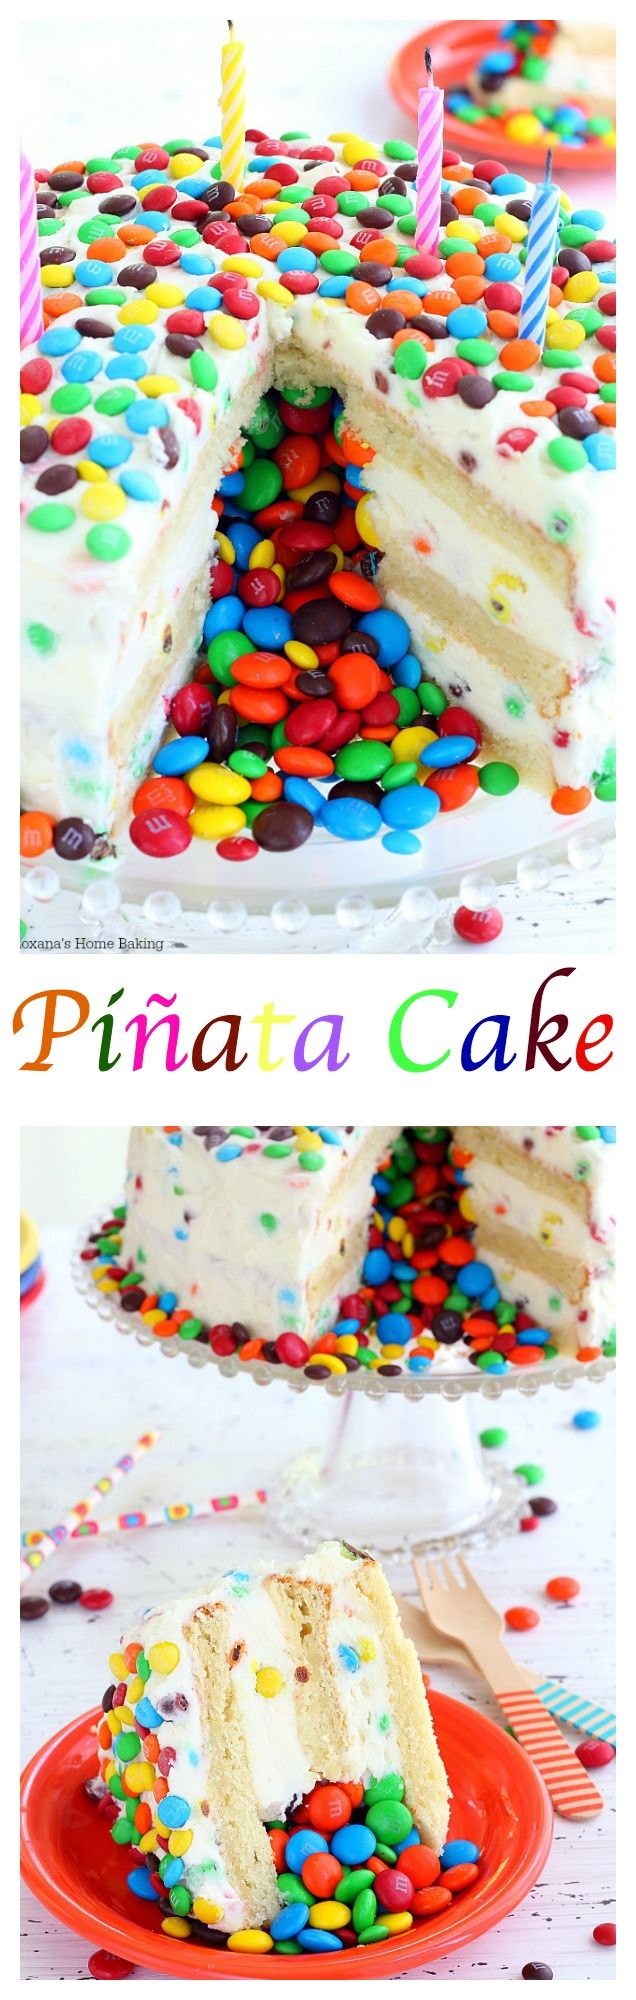 Have a birthday party coming up? Surprise your guests when you cut into the birthday cake and colorful candy spills out just like a piñata. It's Piñata cake time!